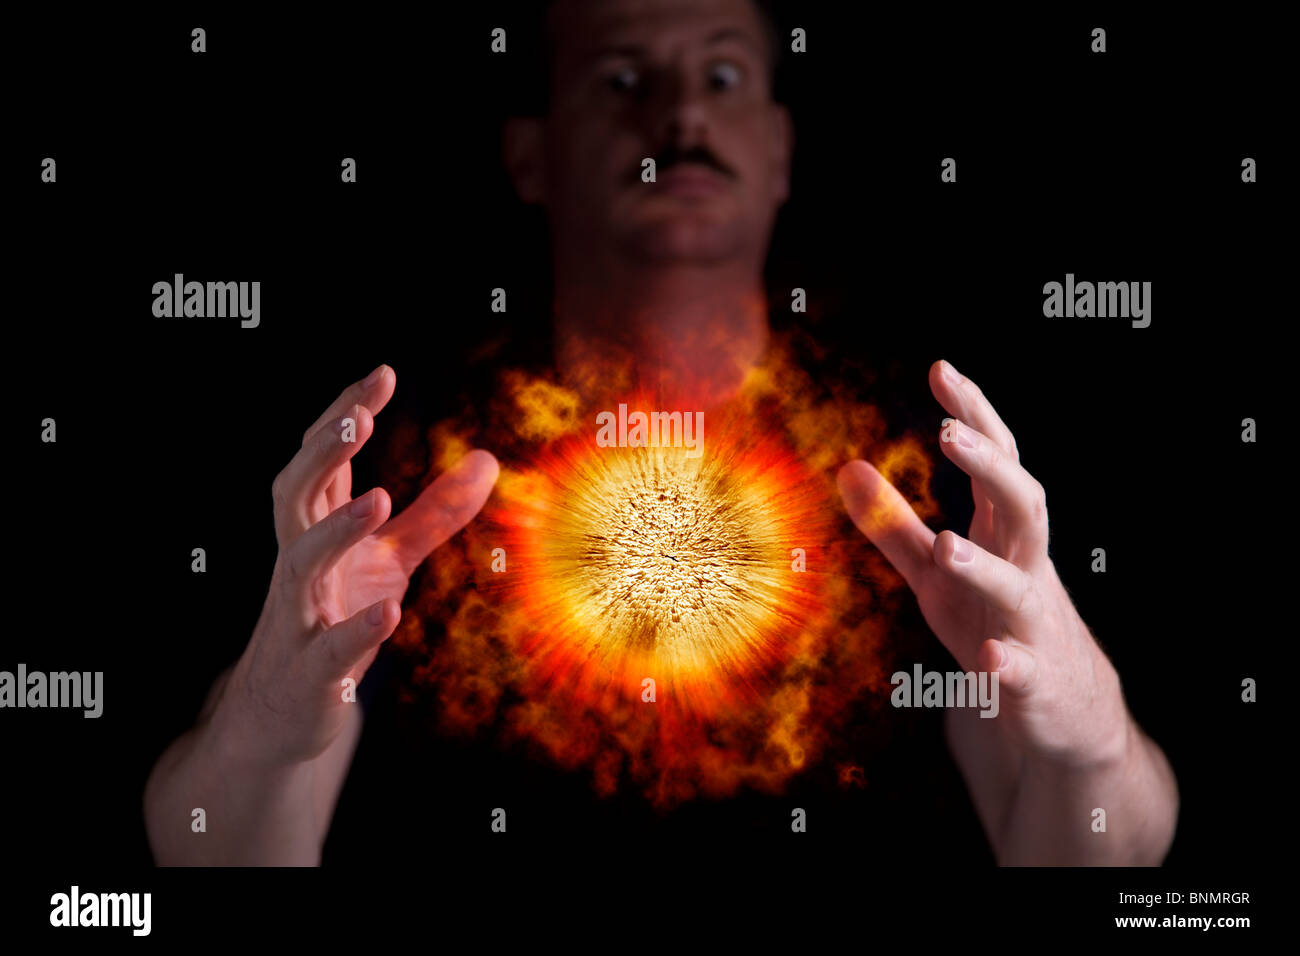 Mad scientist is using superpower to cause an explosion - Stock Image